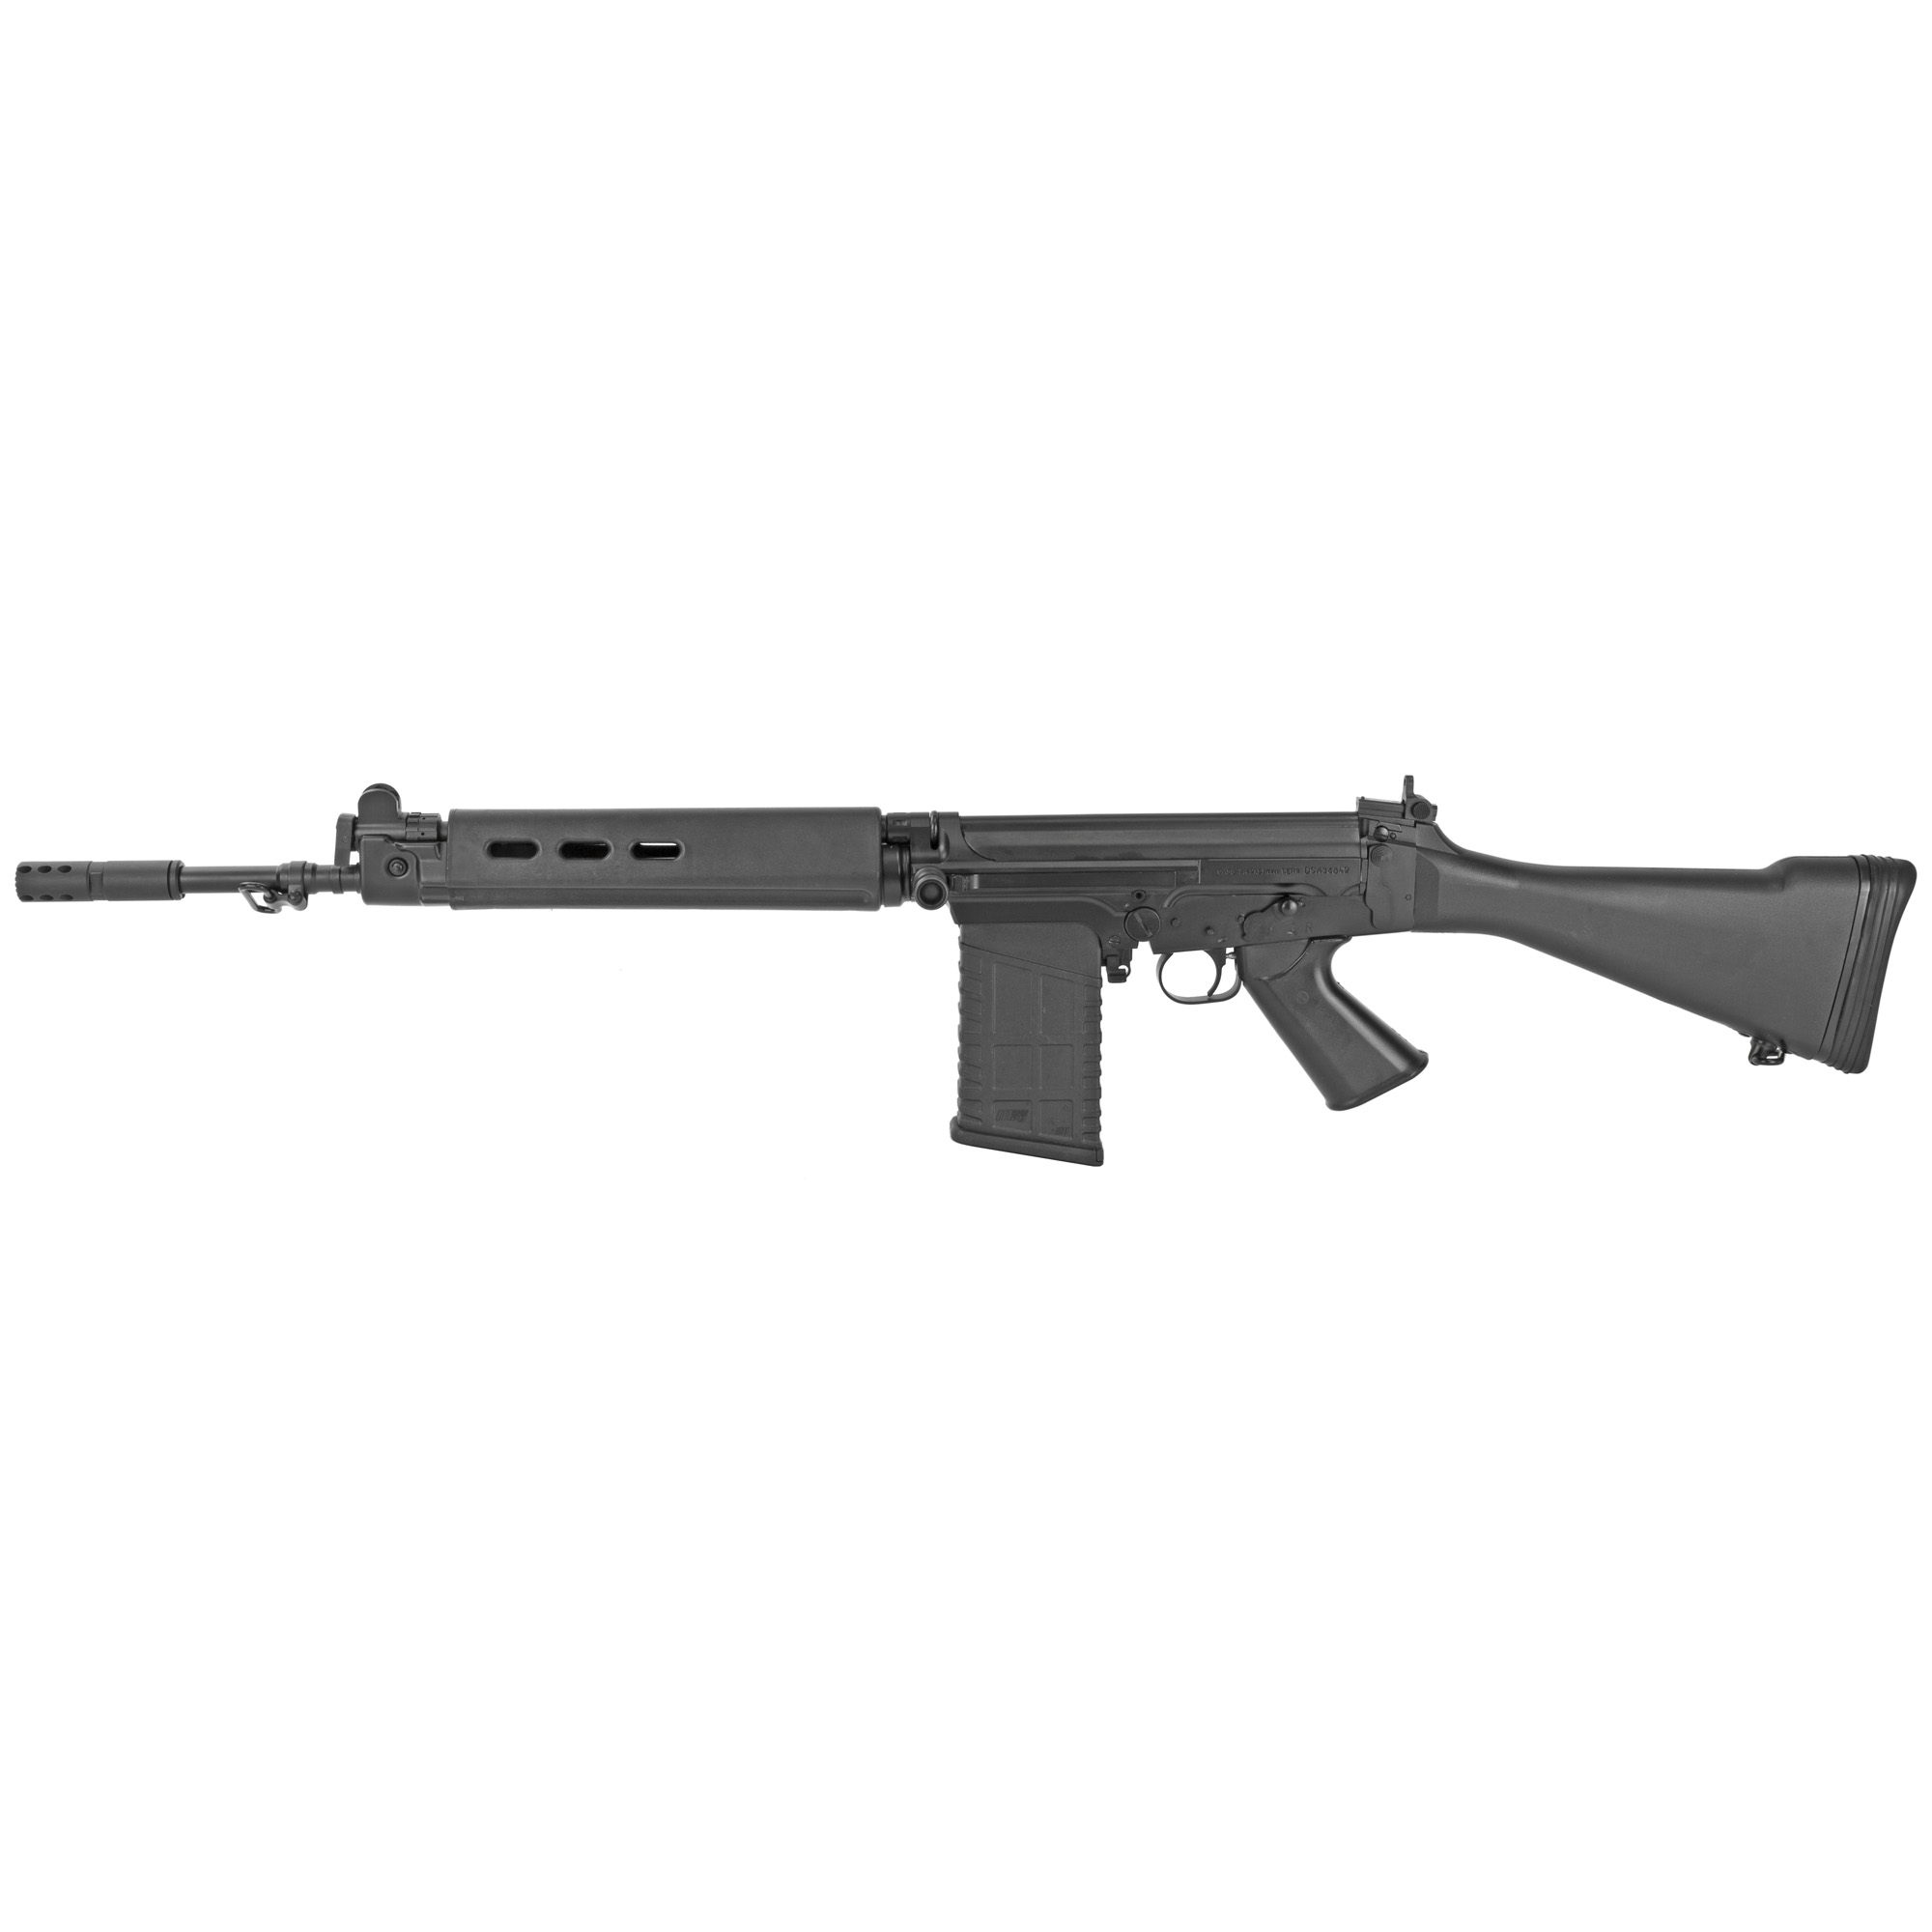 "Today"" few things can be described as ""better than the original"". After many years of development and production"" DSA SA58(TM) rifles exceed the quality of any FAL type rifle ever produced."